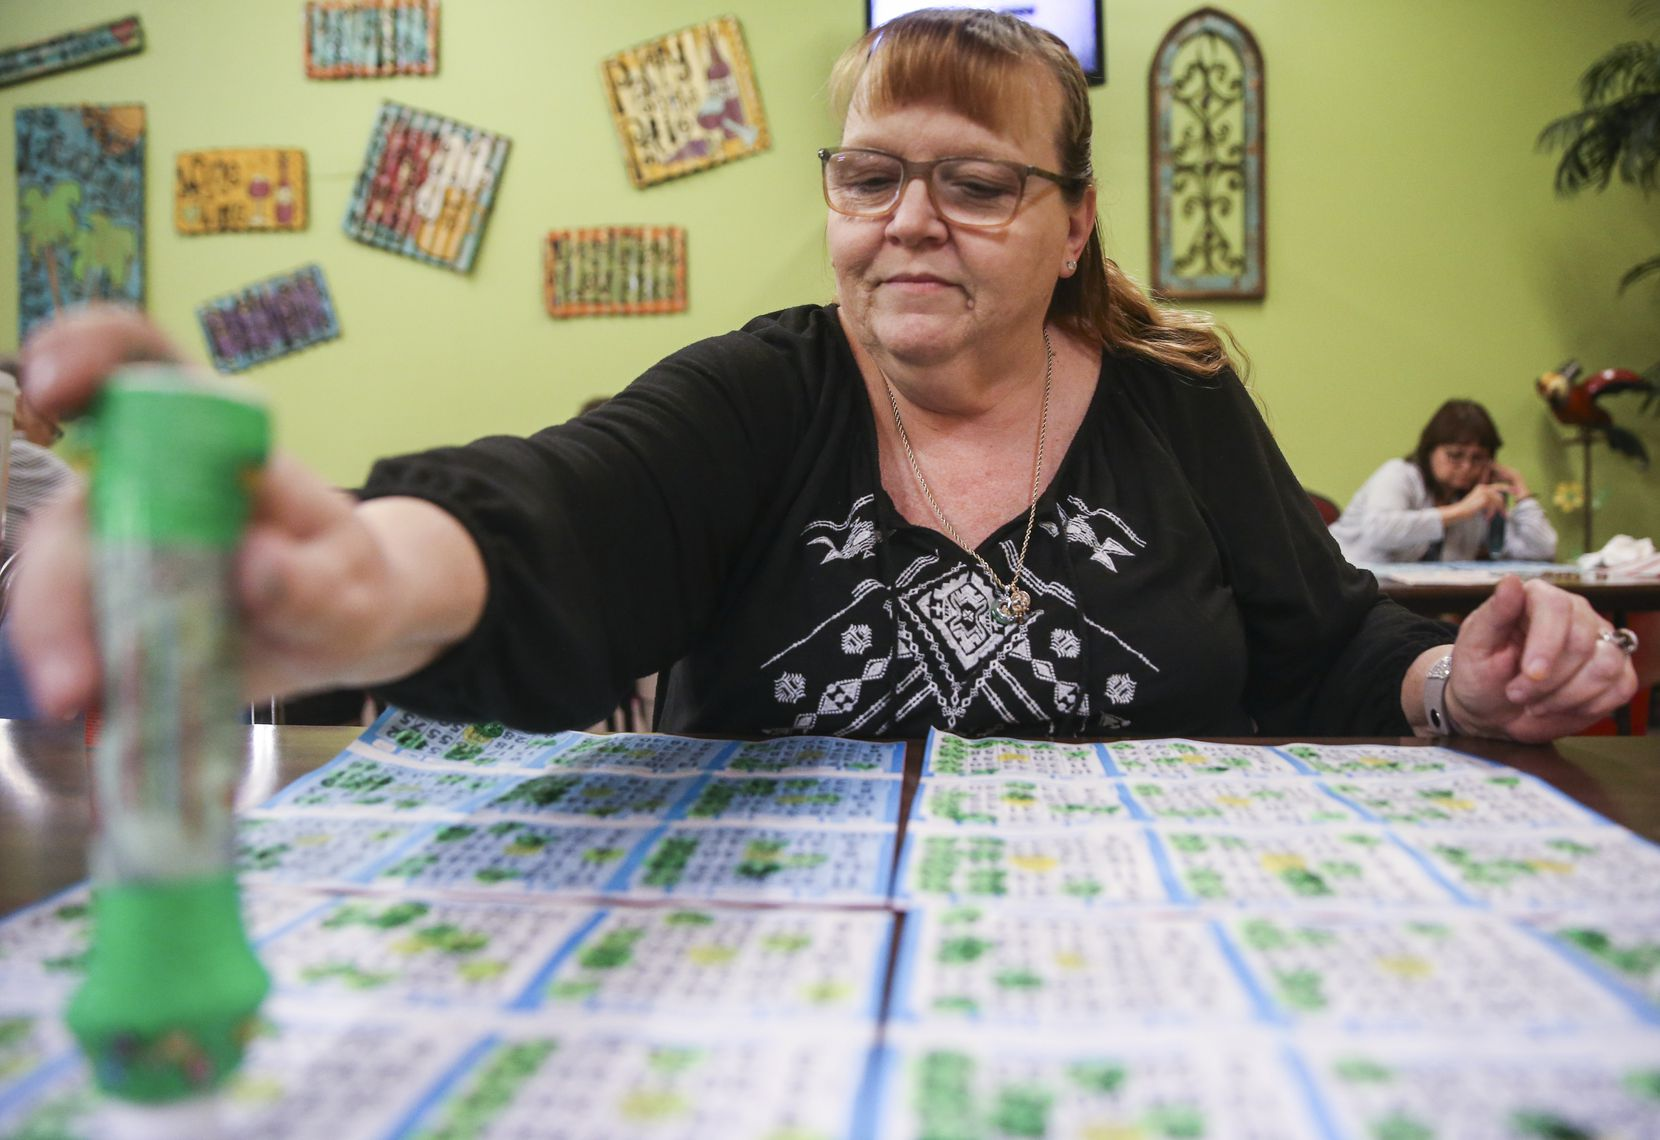 Jeannie Masconi, of Duncanville, Texas, marks her cards during a round of bingo at Jackpot Bingo on Thursday, April 11, 2019 in Duncanville.